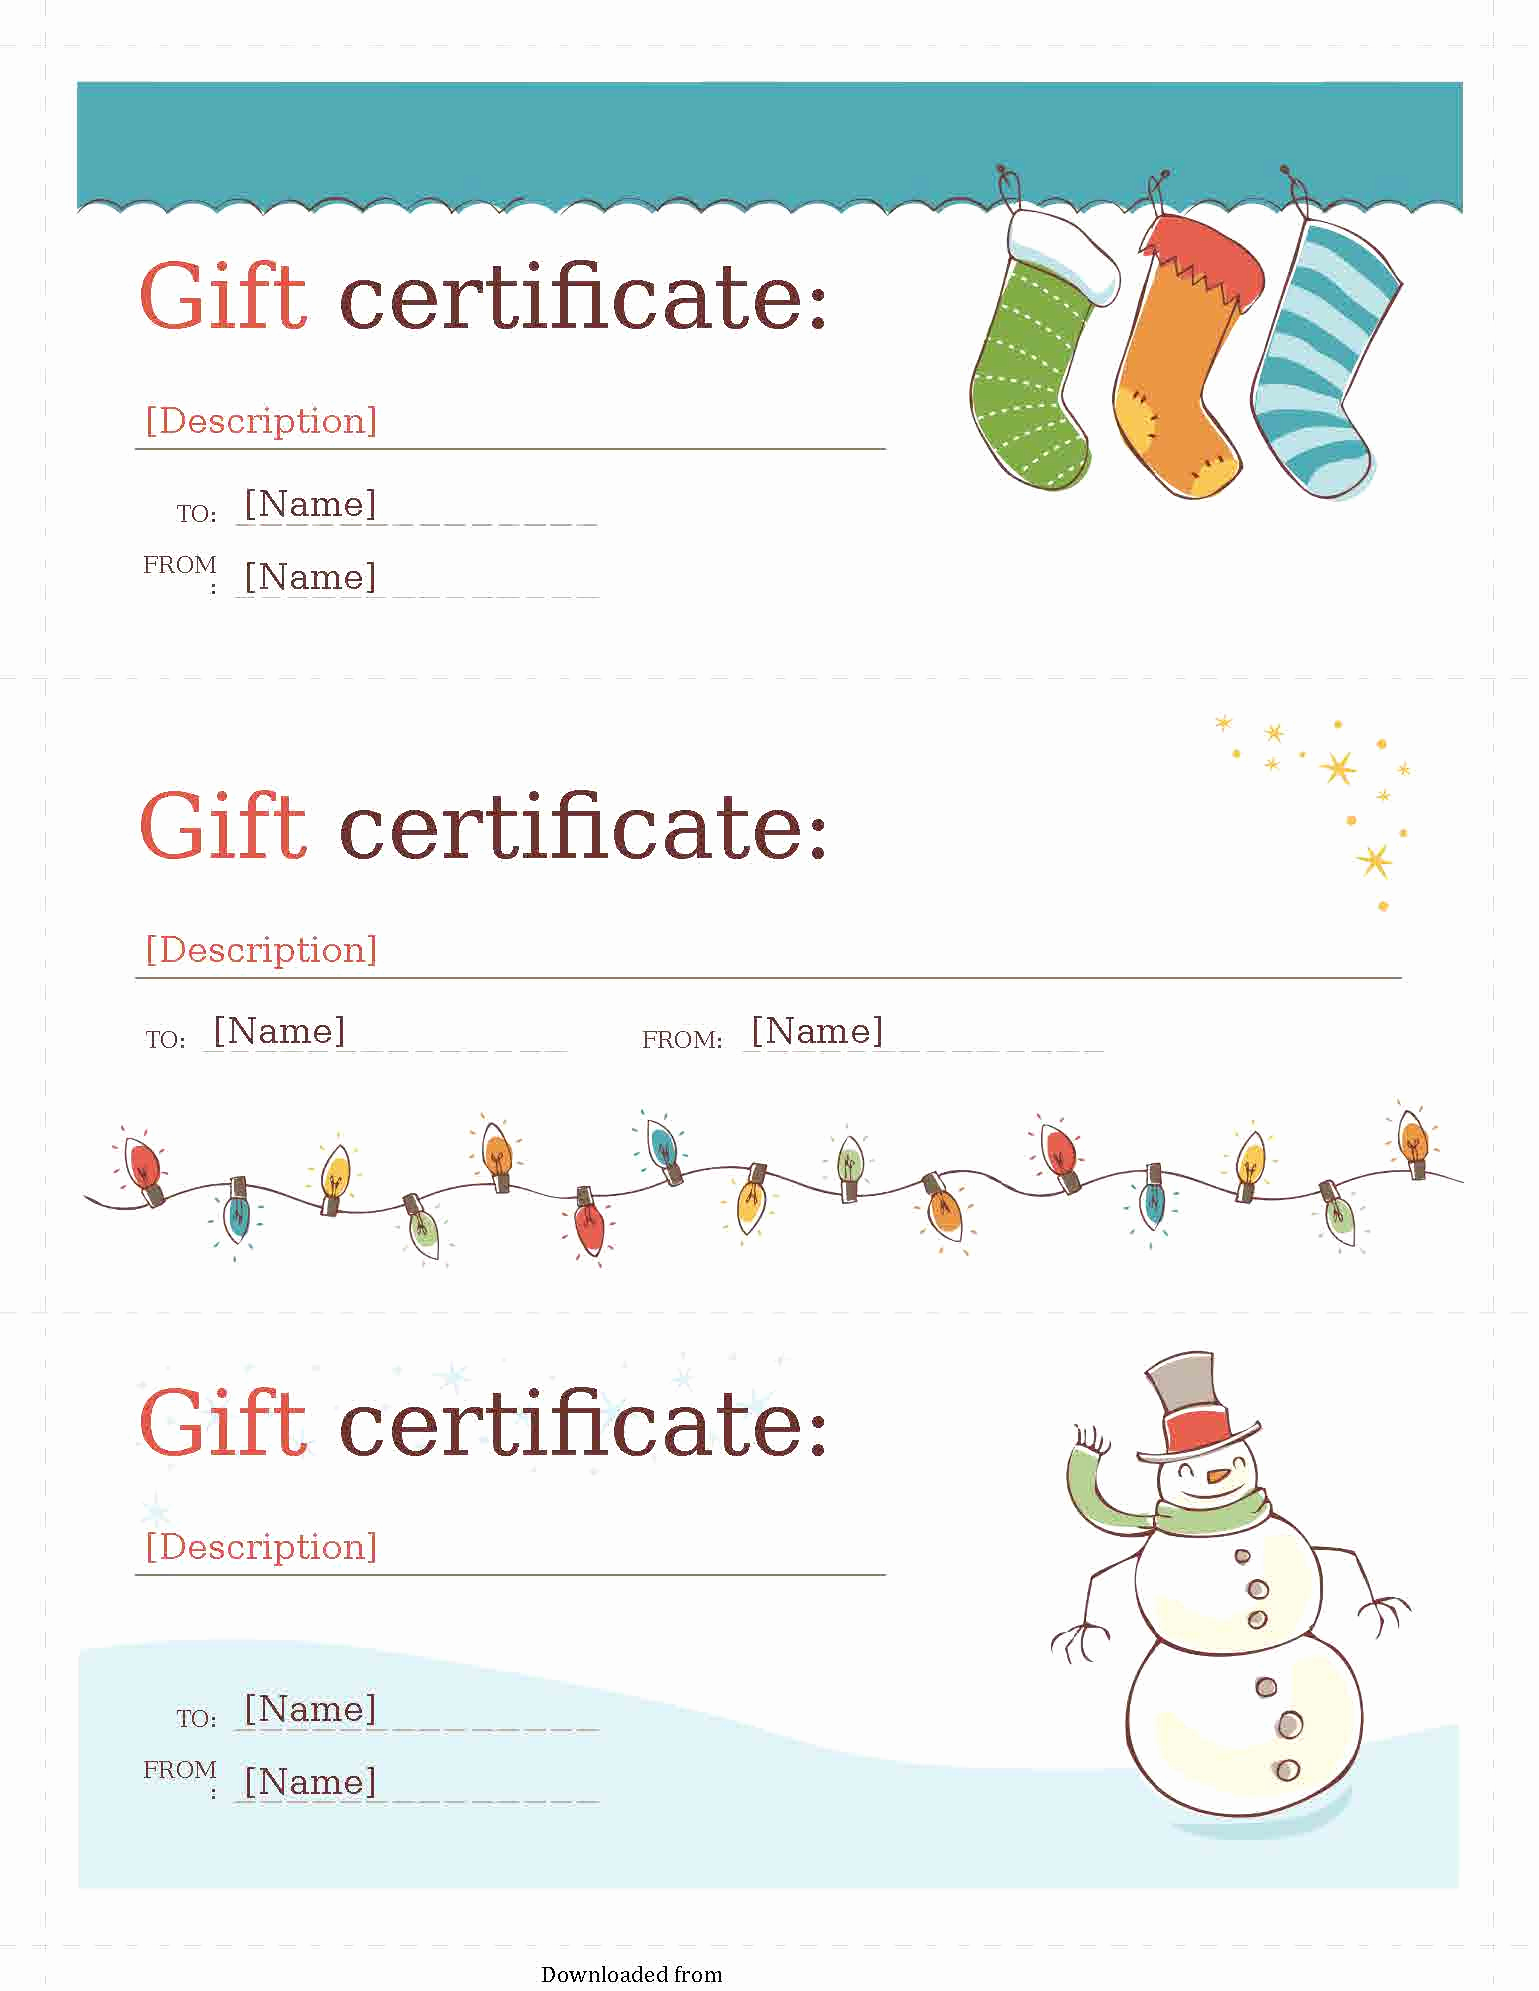 Template for Gift Certificate Fresh Gift Certificate Template 2 Pdf Pdf format